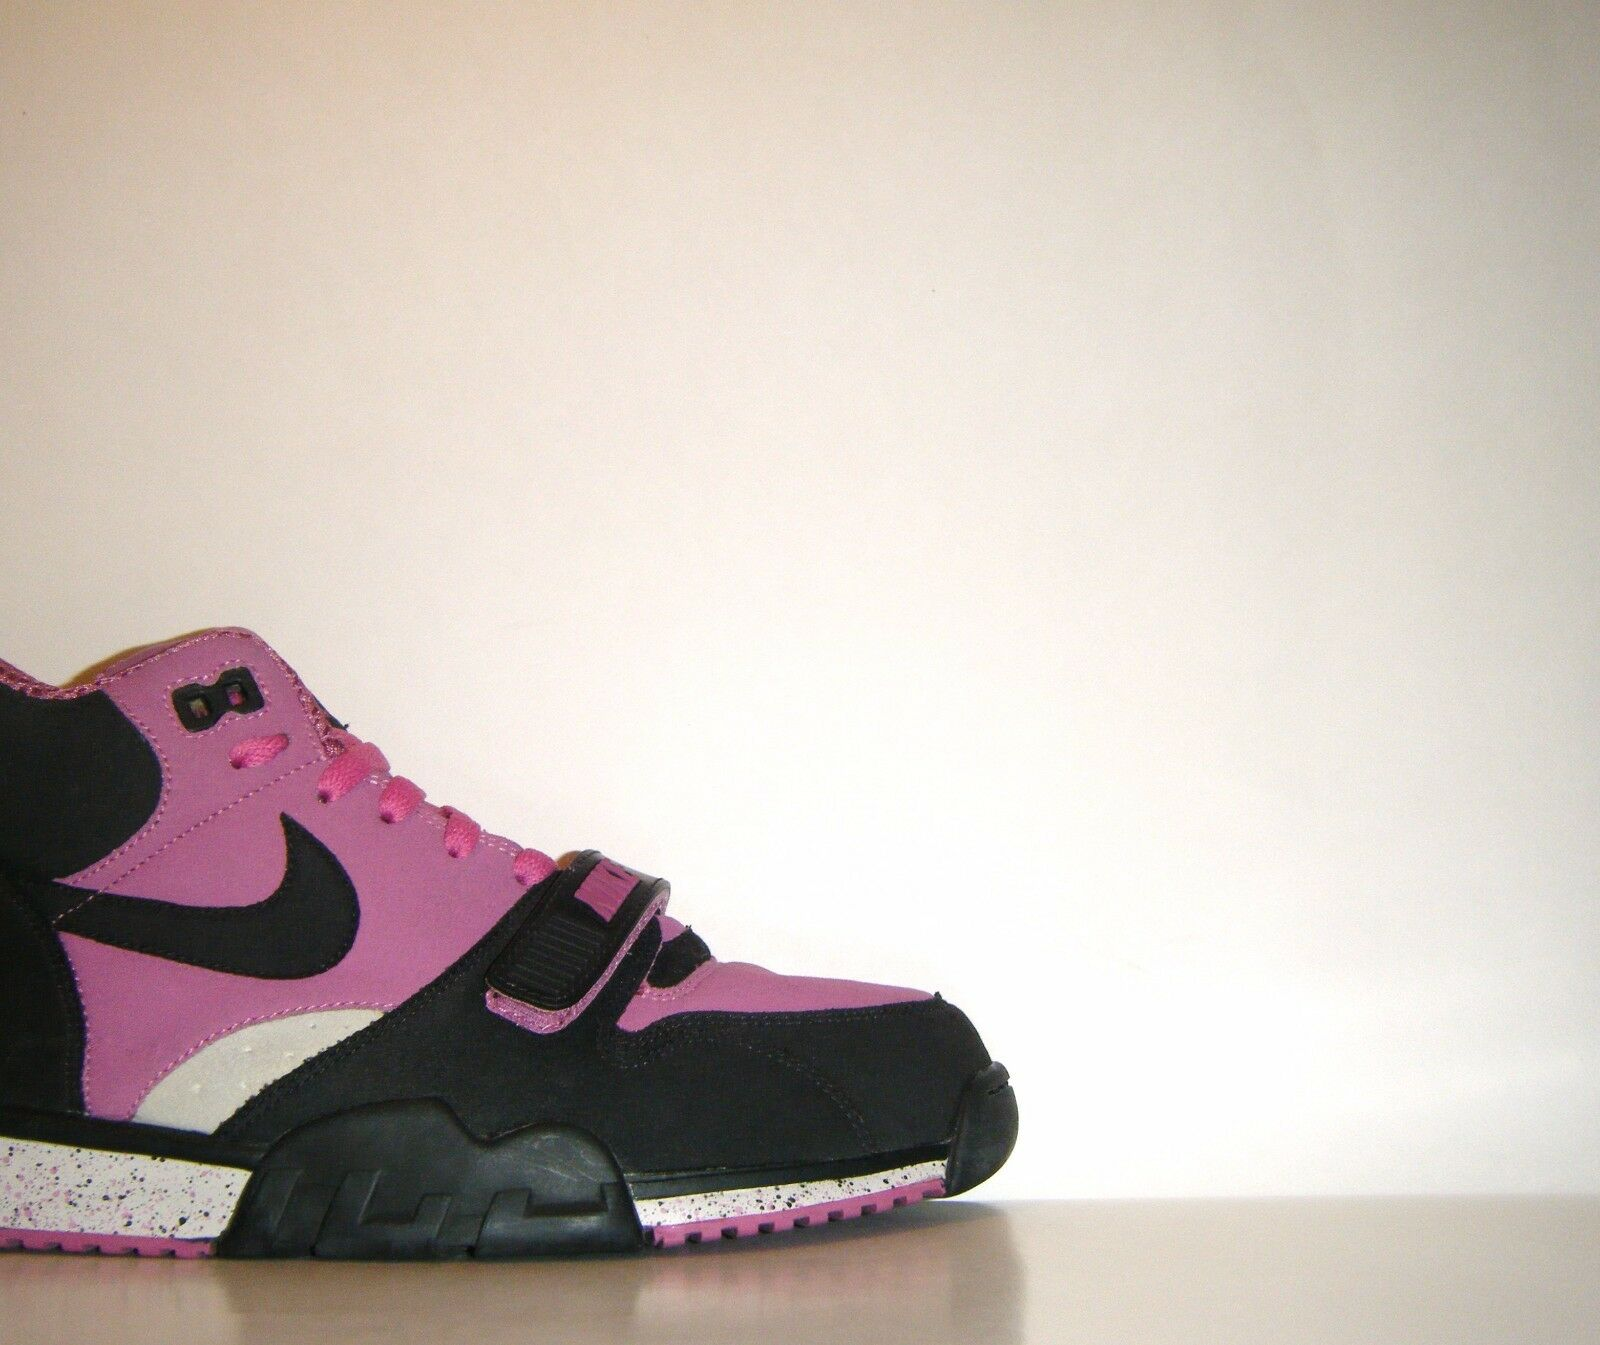 2007 Nike Air Air Air Trainer 1 Mid Tech Pack LOOK-SEE SAMPLE Sz. 9 Rare Vtg Promo PE 6fe503